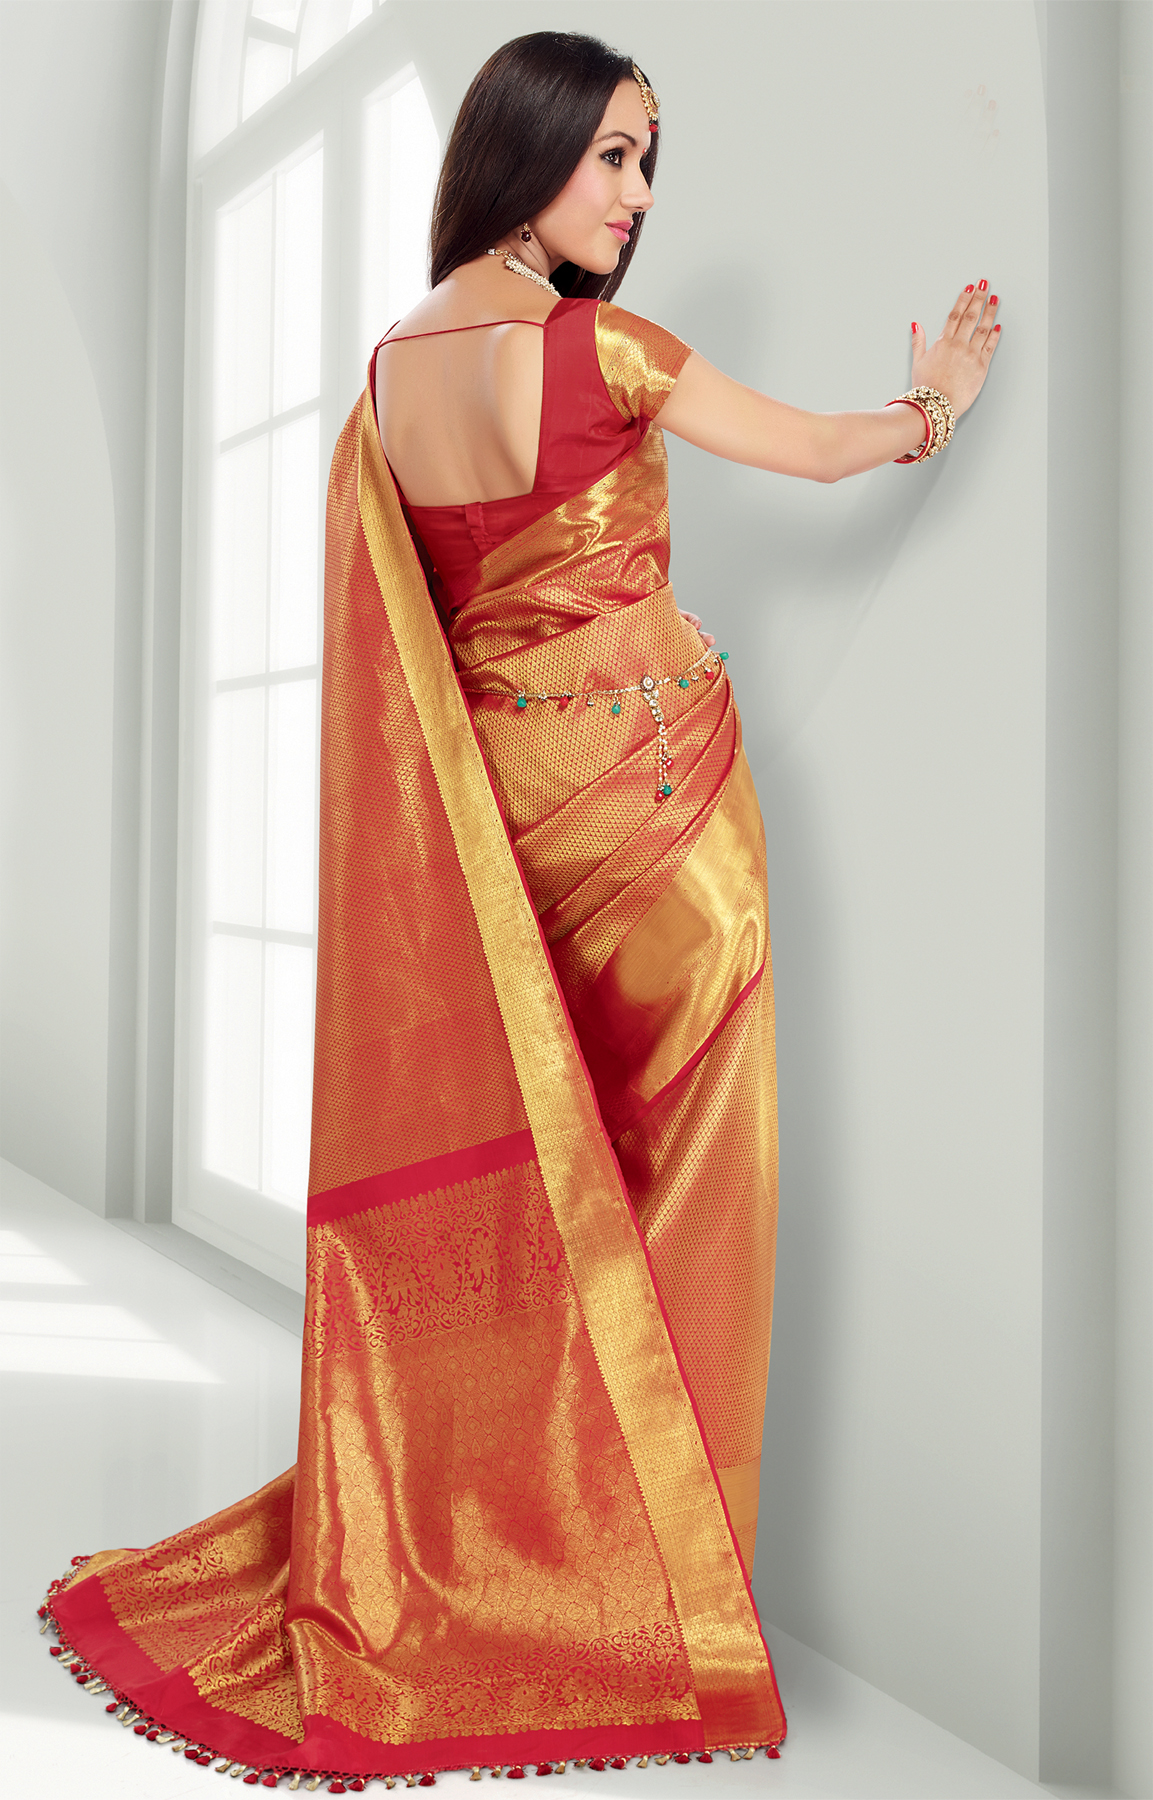 d3335ef737 Red pure silk saree with gold motifs throughout the saree and a wide  one-side gold border - RmKV Silks